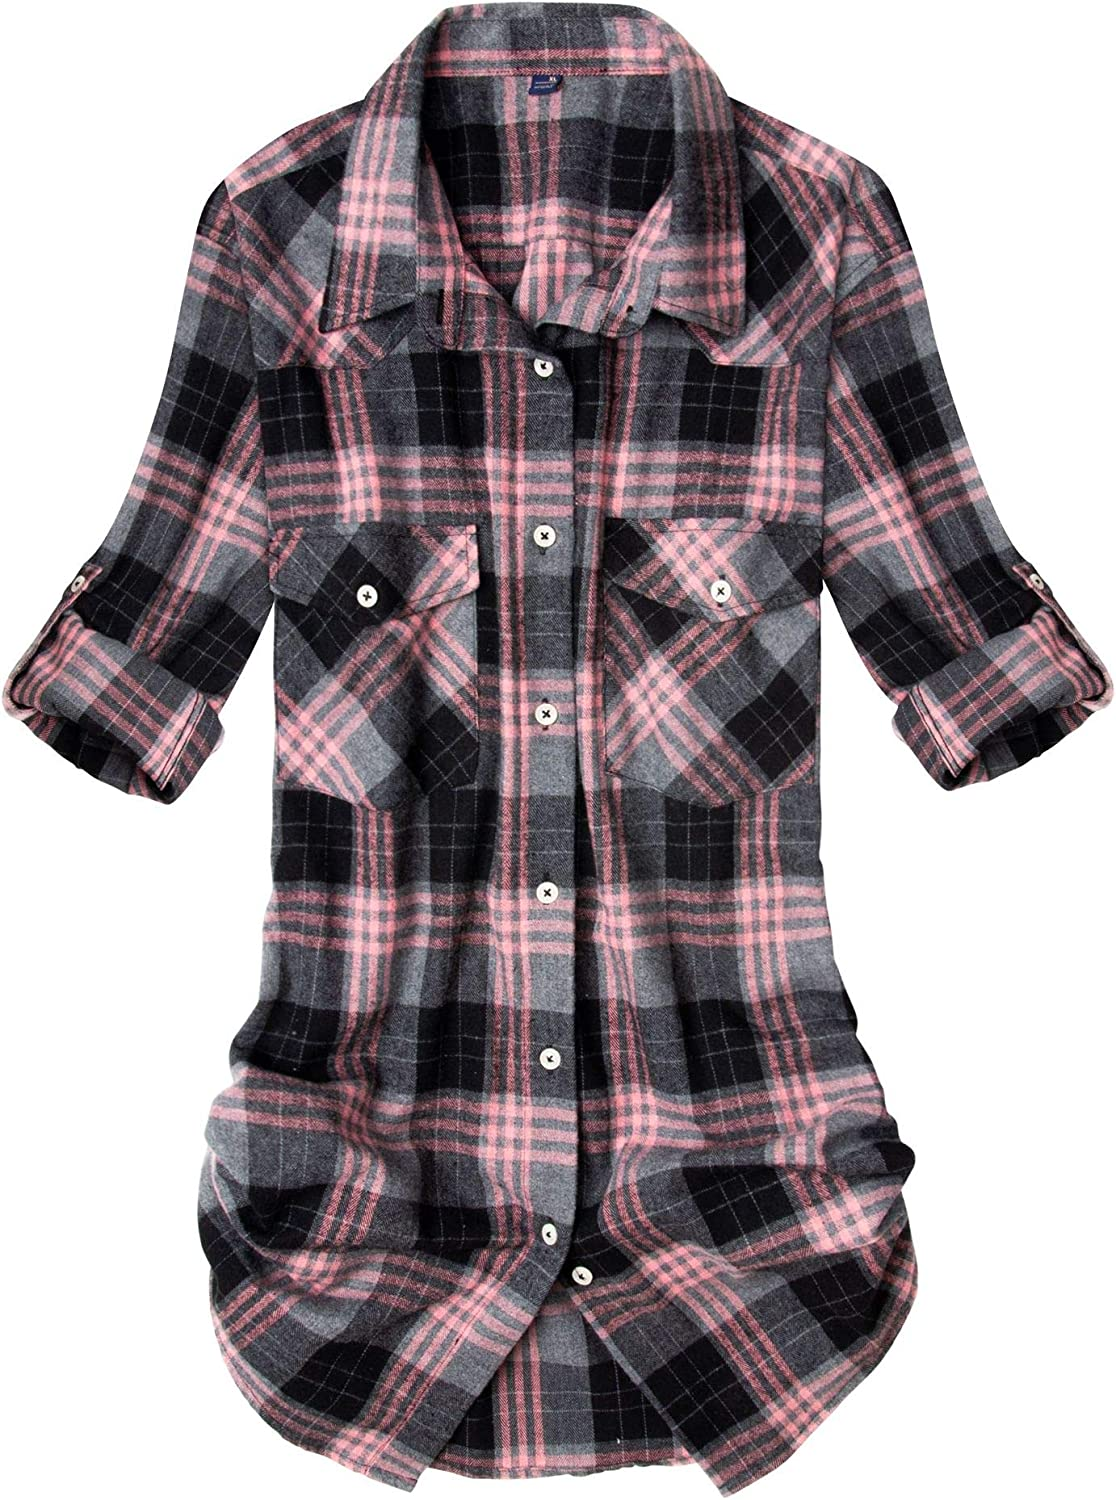 Alimens & Gentle Women's Flannel Plaid Shirt Long Sleeve Roll Up Button Down Casual Shirts